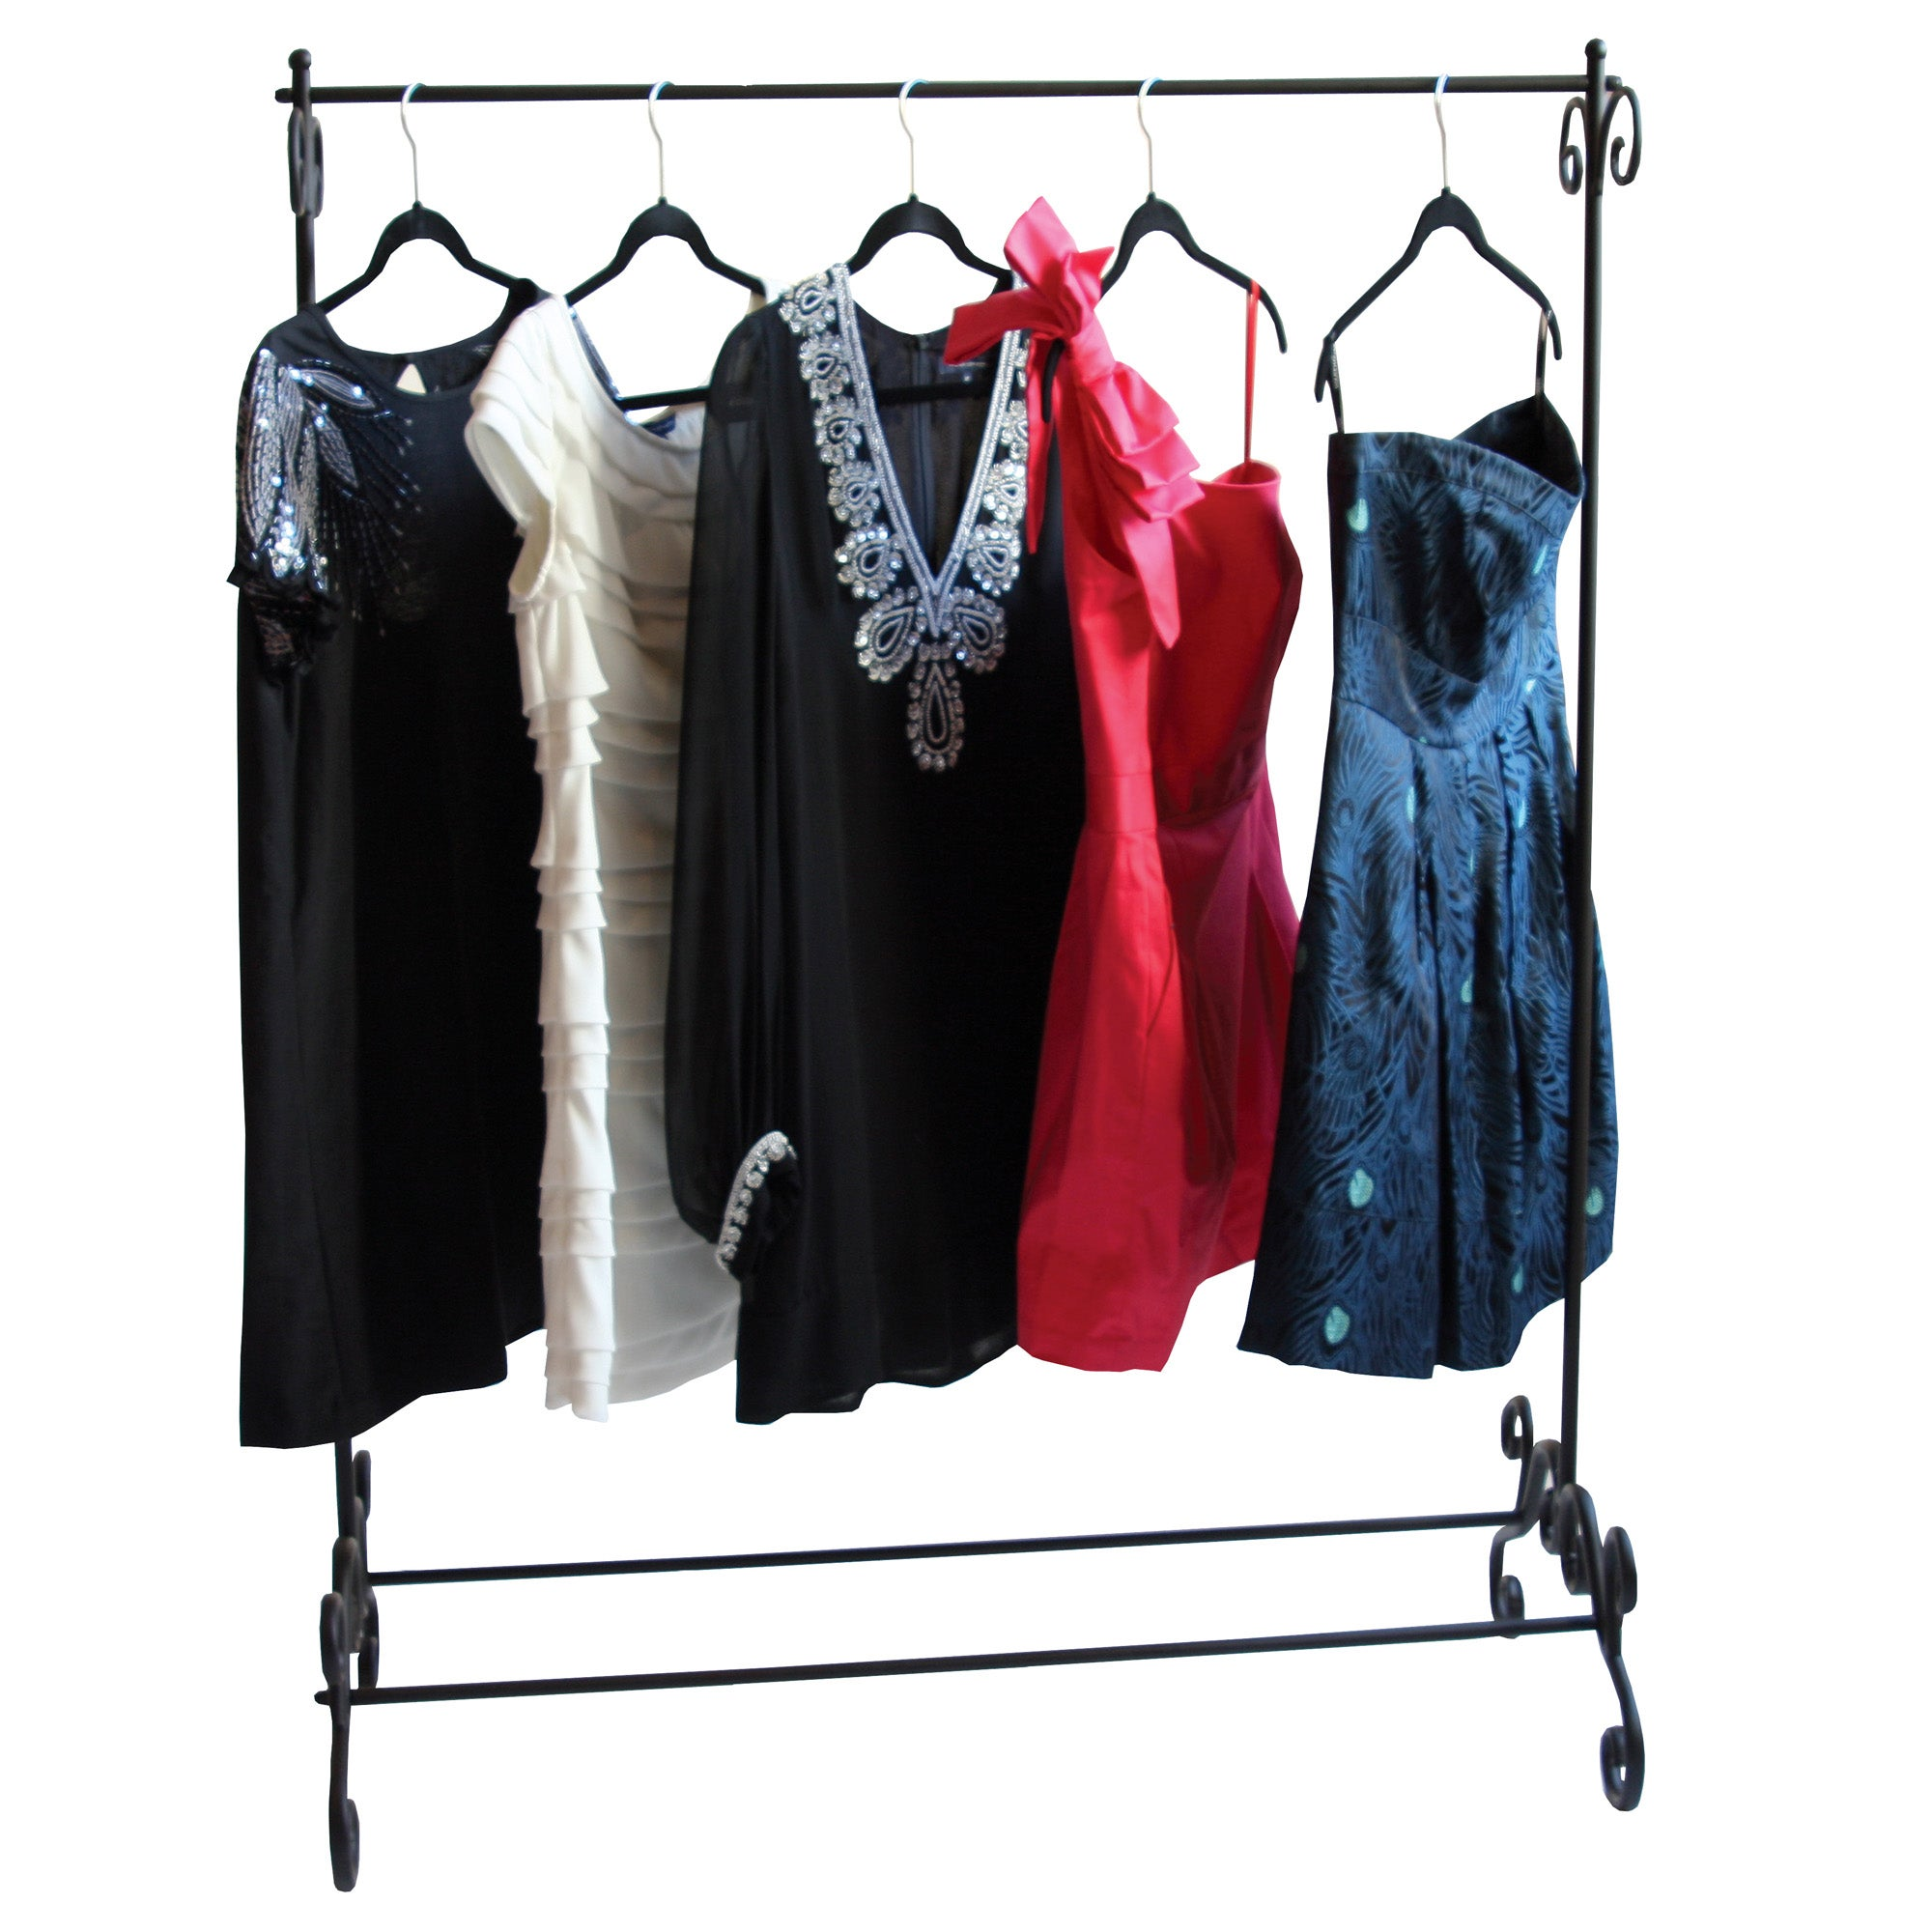 buy cheap metal clothes rail compare products prices for. Black Bedroom Furniture Sets. Home Design Ideas